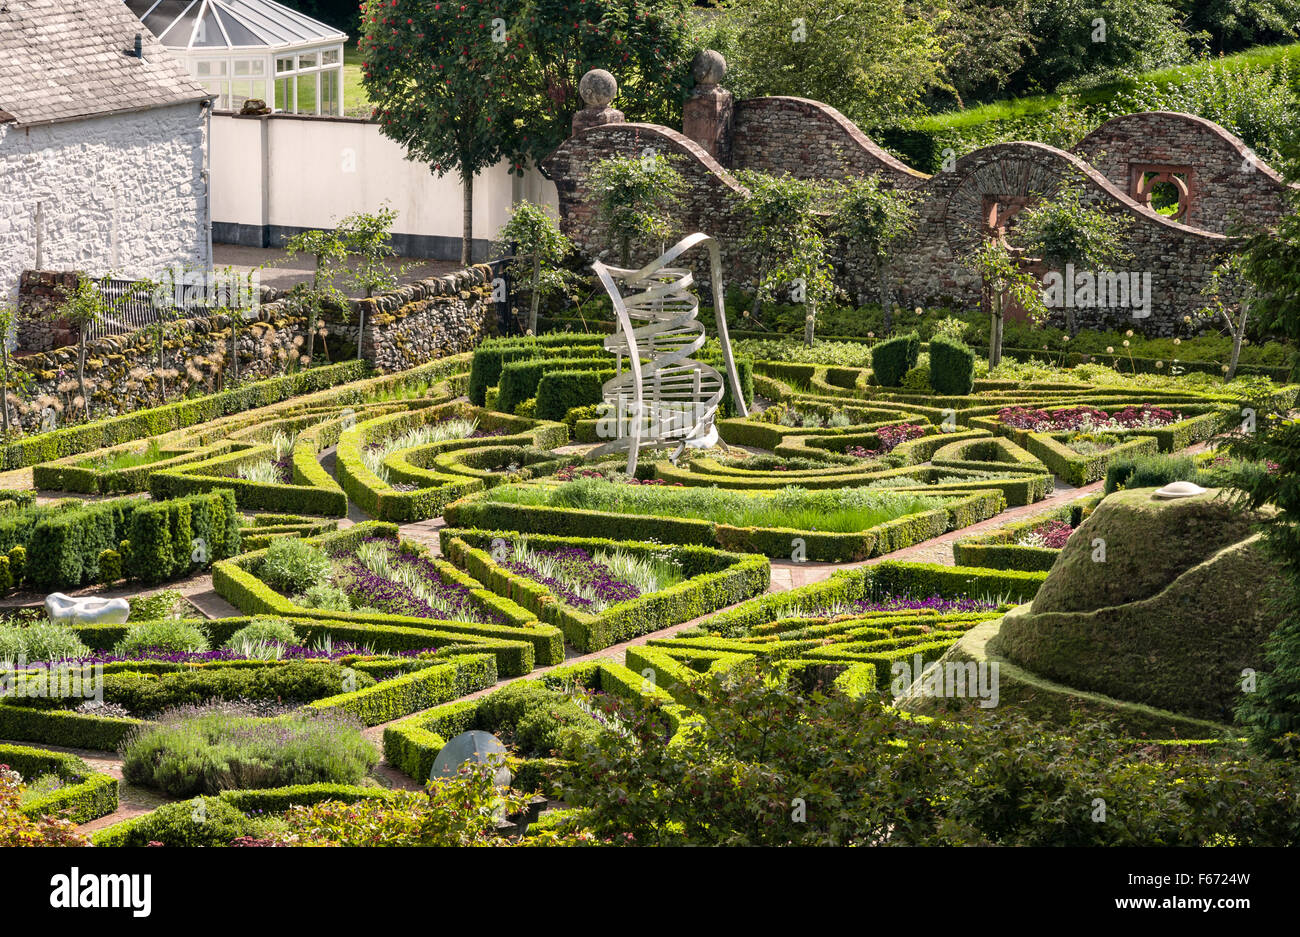 the garden of cosmic speculation dumfries scotland by charles stock photo 89895145 alamy. Black Bedroom Furniture Sets. Home Design Ideas